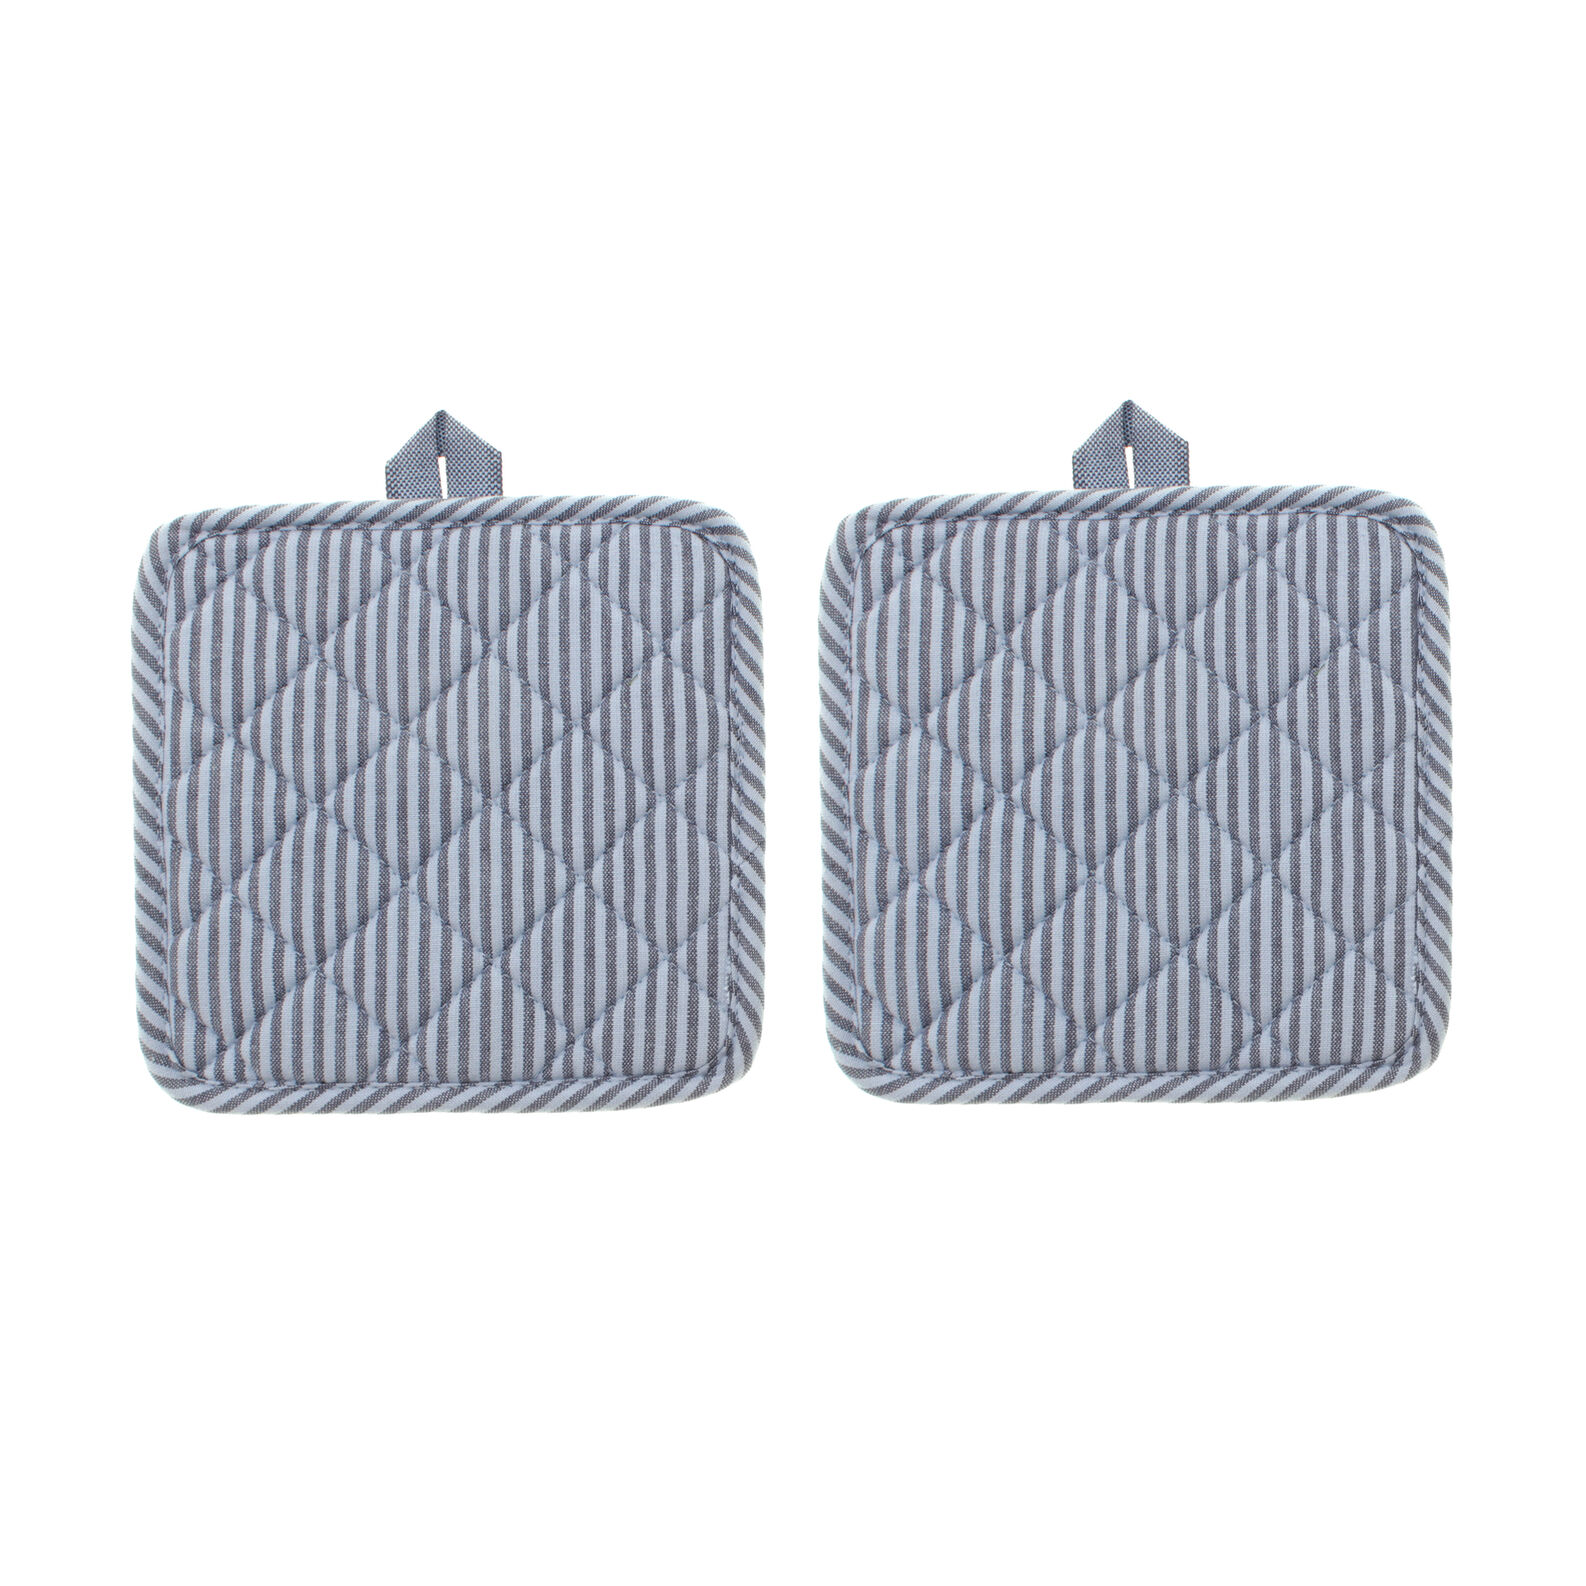 Set of two quilted pot holders